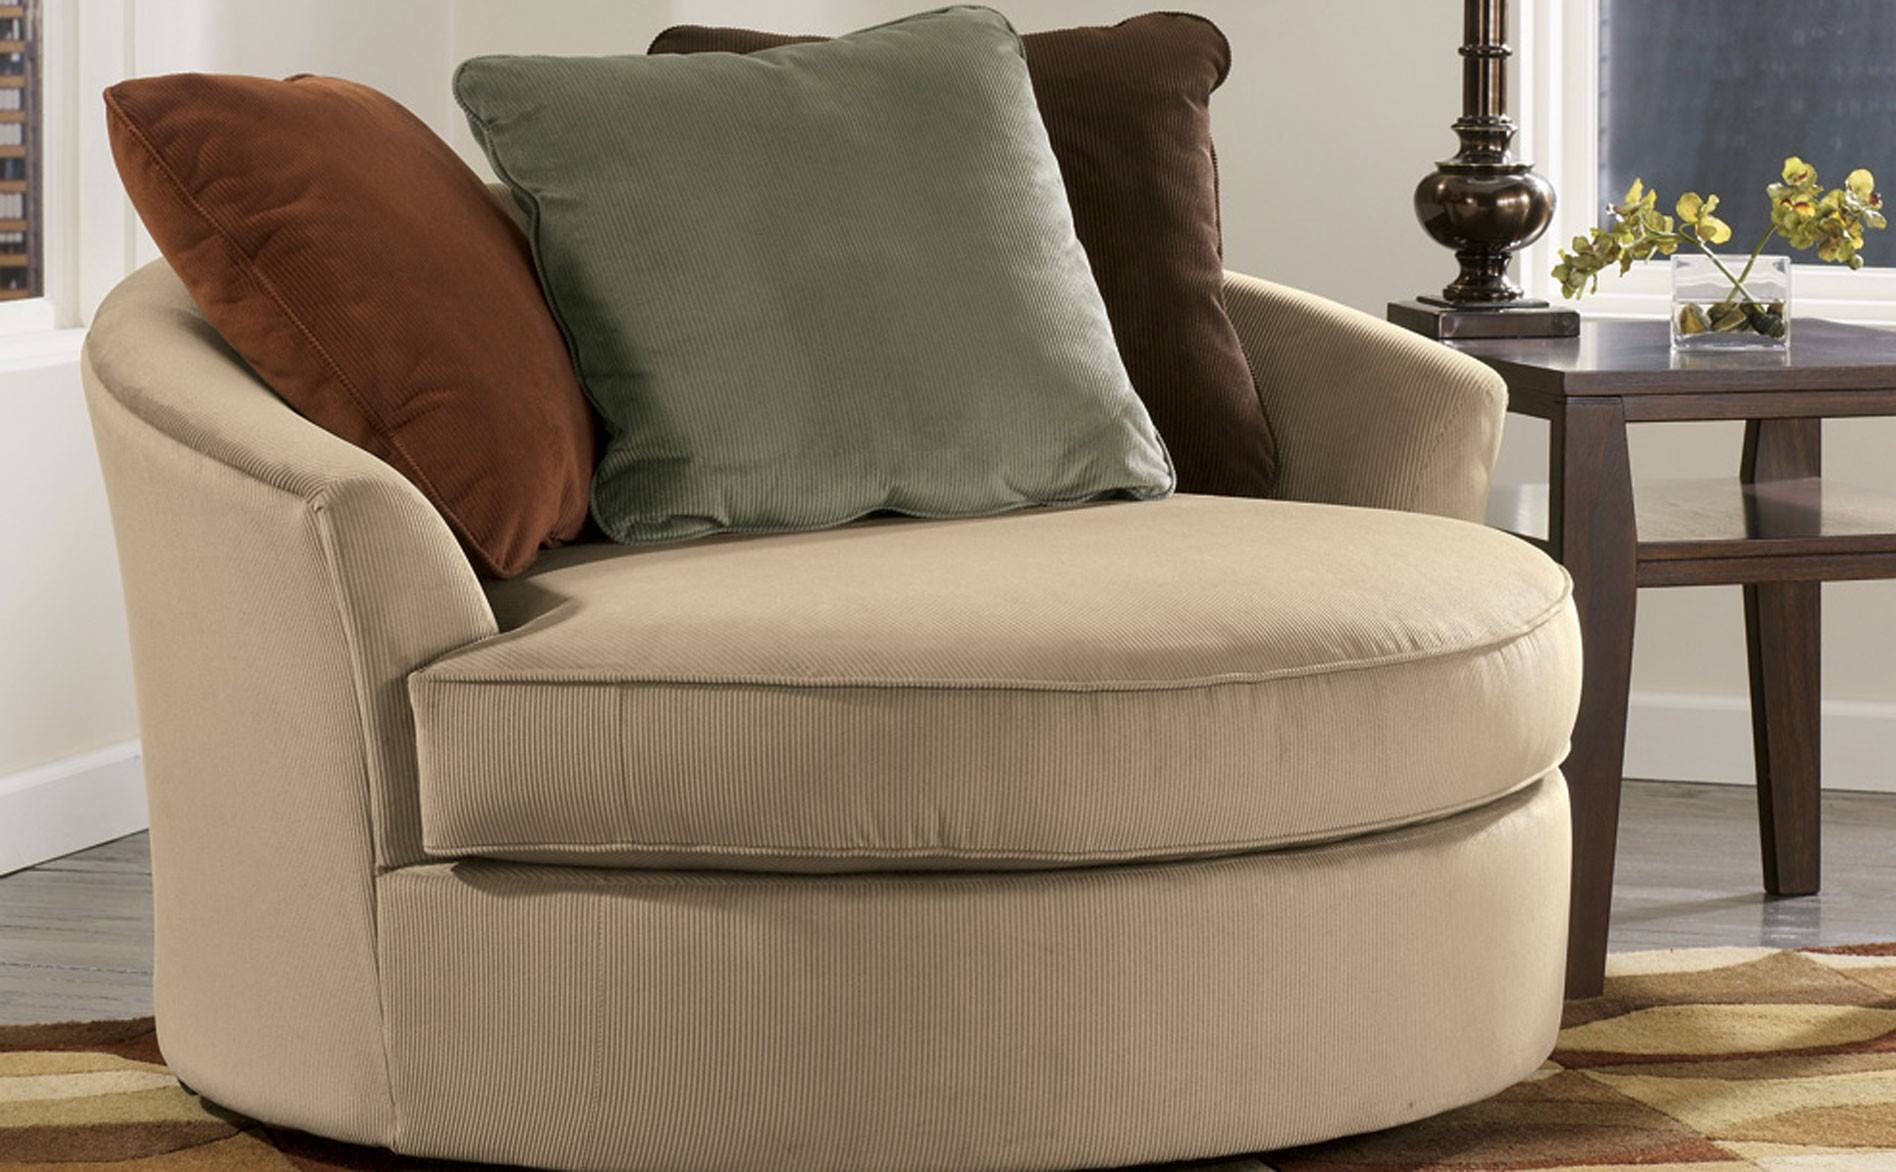 Swivel Living Room Chairs Living Room Chairs Swivel